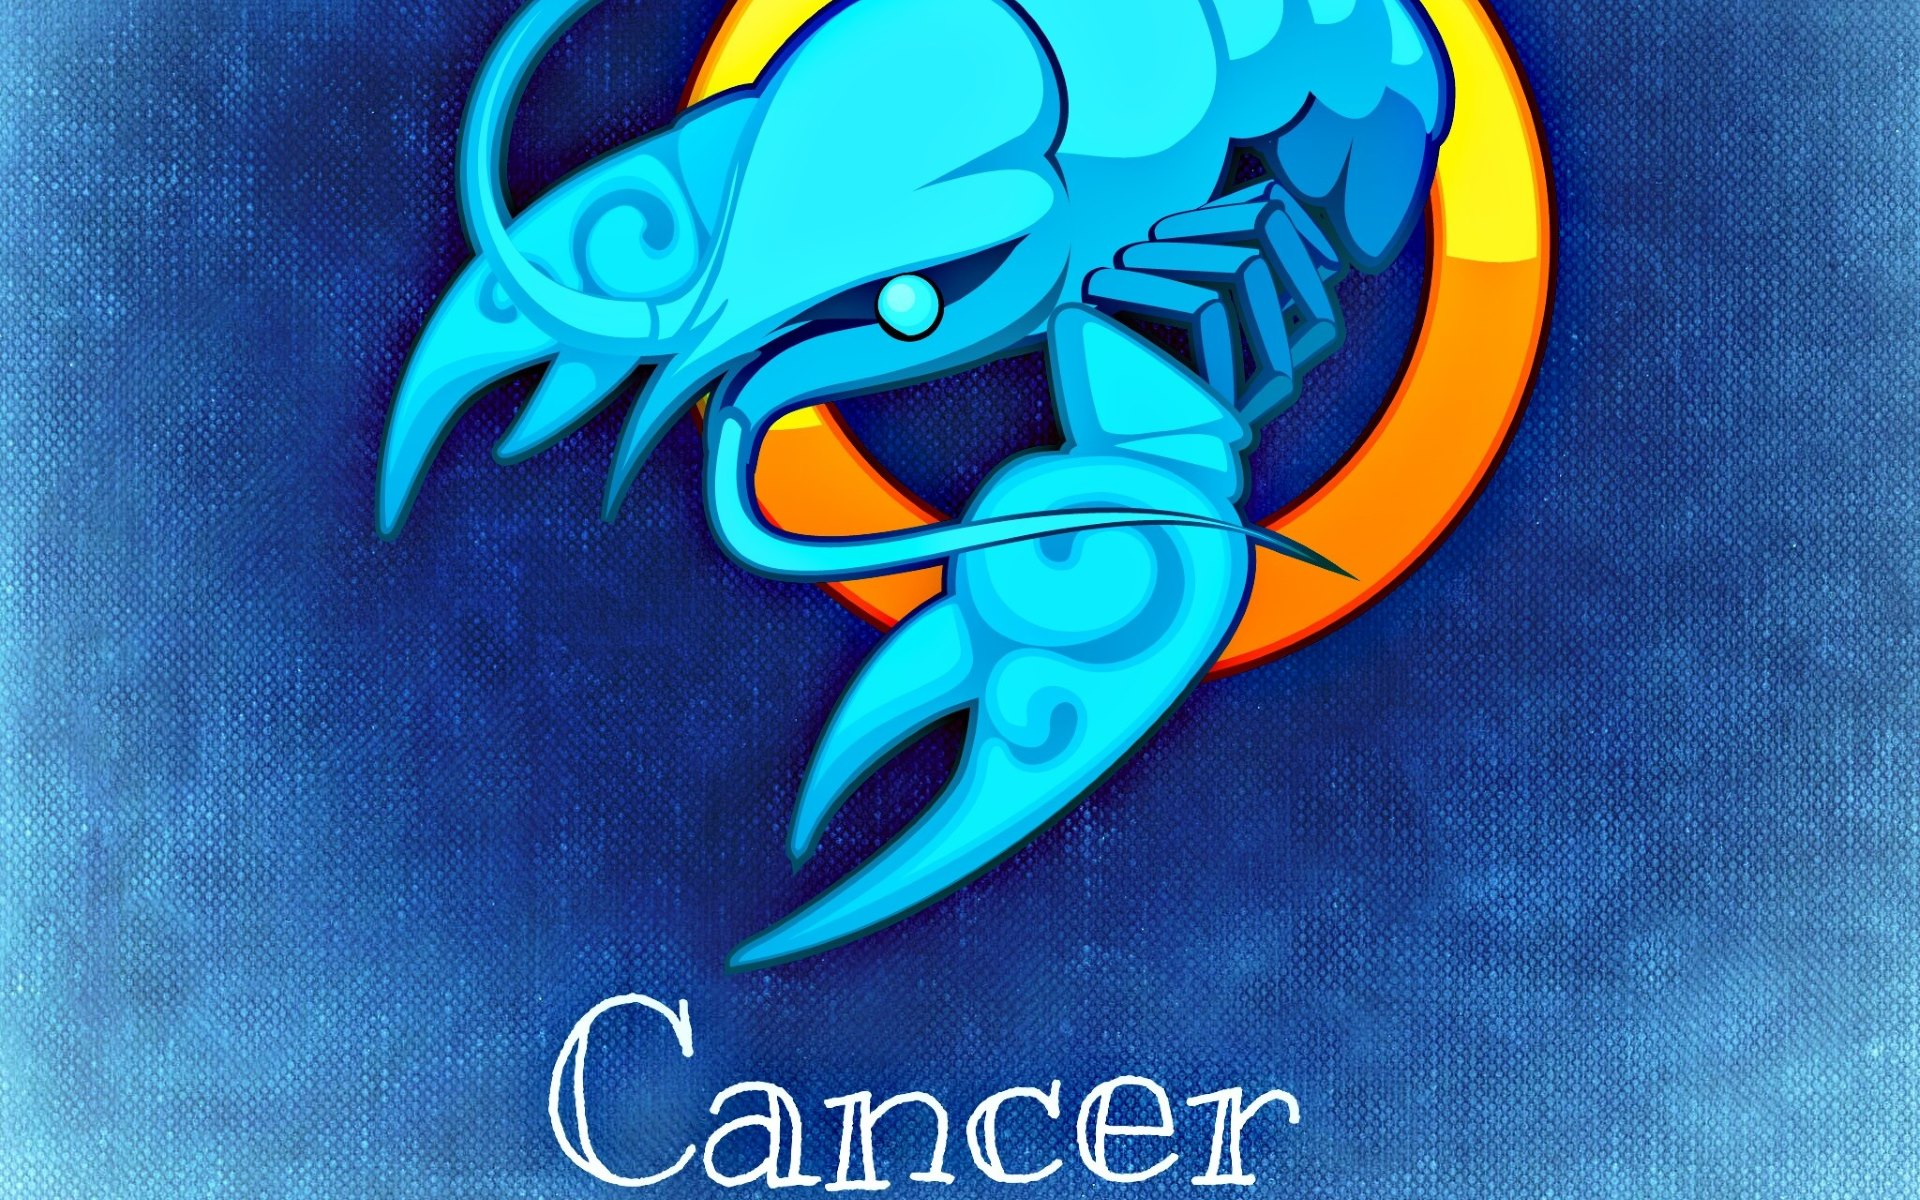 Horoscope Cancer Hd Wallpaper Background Image 1920x1200 Id 652886 Wallpaper Abyss